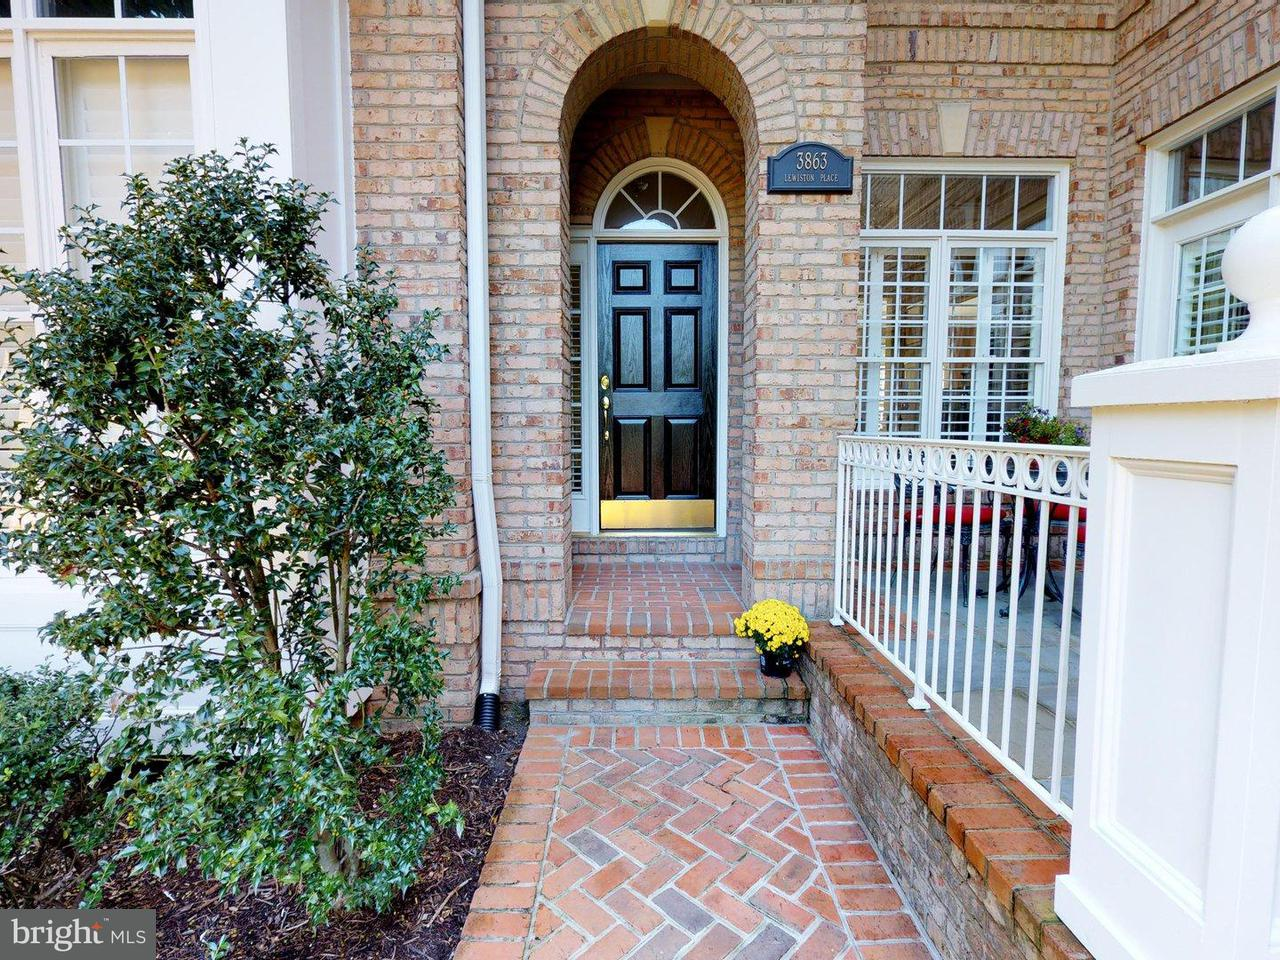 Additional photo for property listing at 3863 Lewiston Place 3863 Lewiston Place Fairfax, Virginia 22030 Estados Unidos